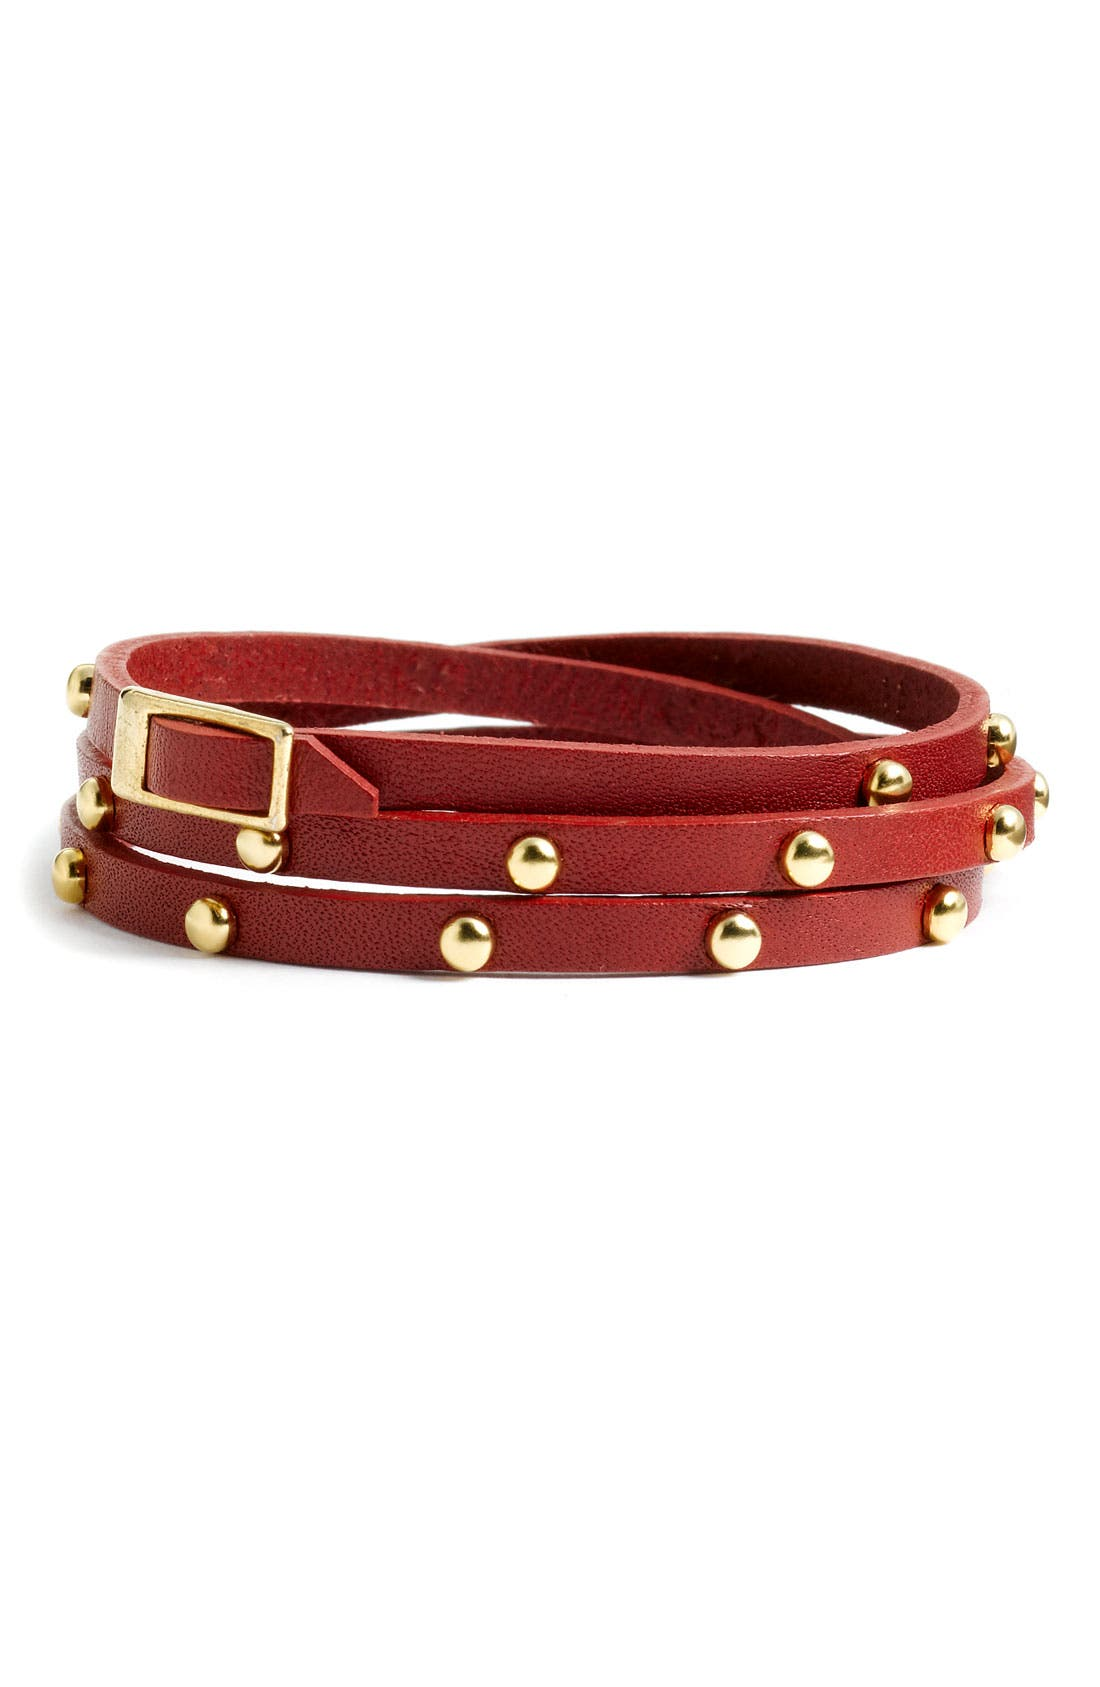 Accessories Leather & Metal Stud Wrap Bracelet,                             Main thumbnail 5, color,